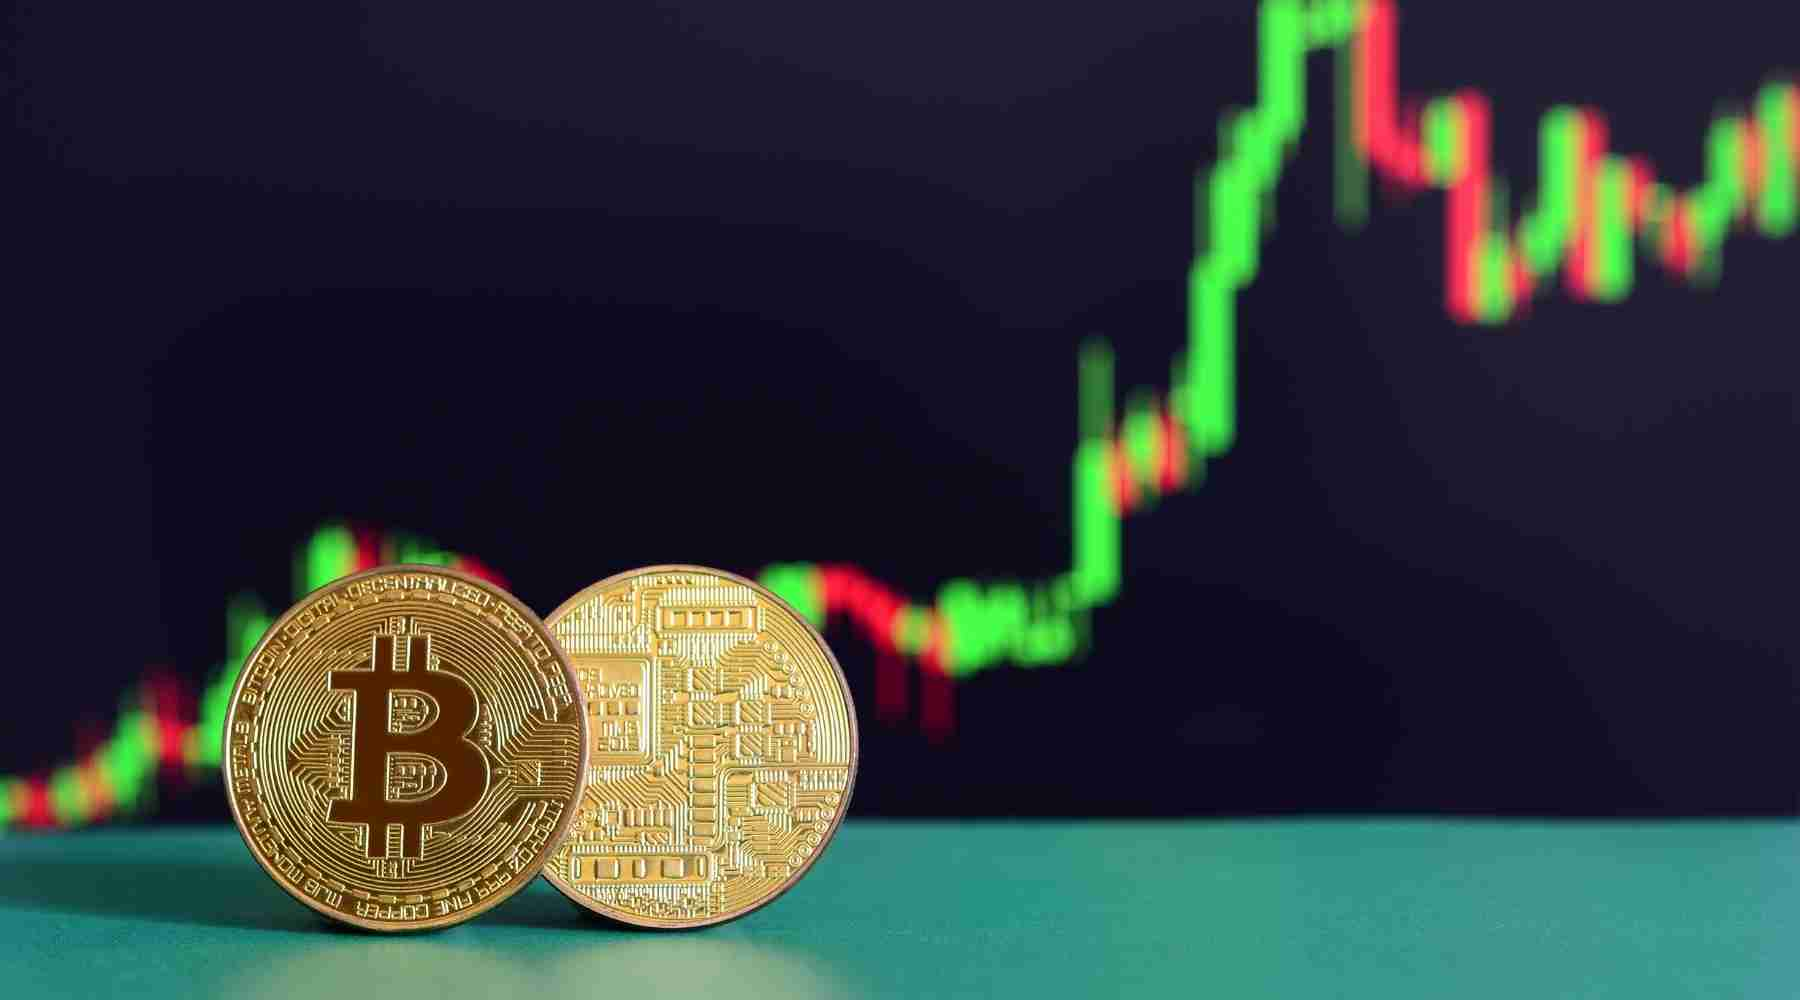 How to Invest $20 - Invest in Bitcoin